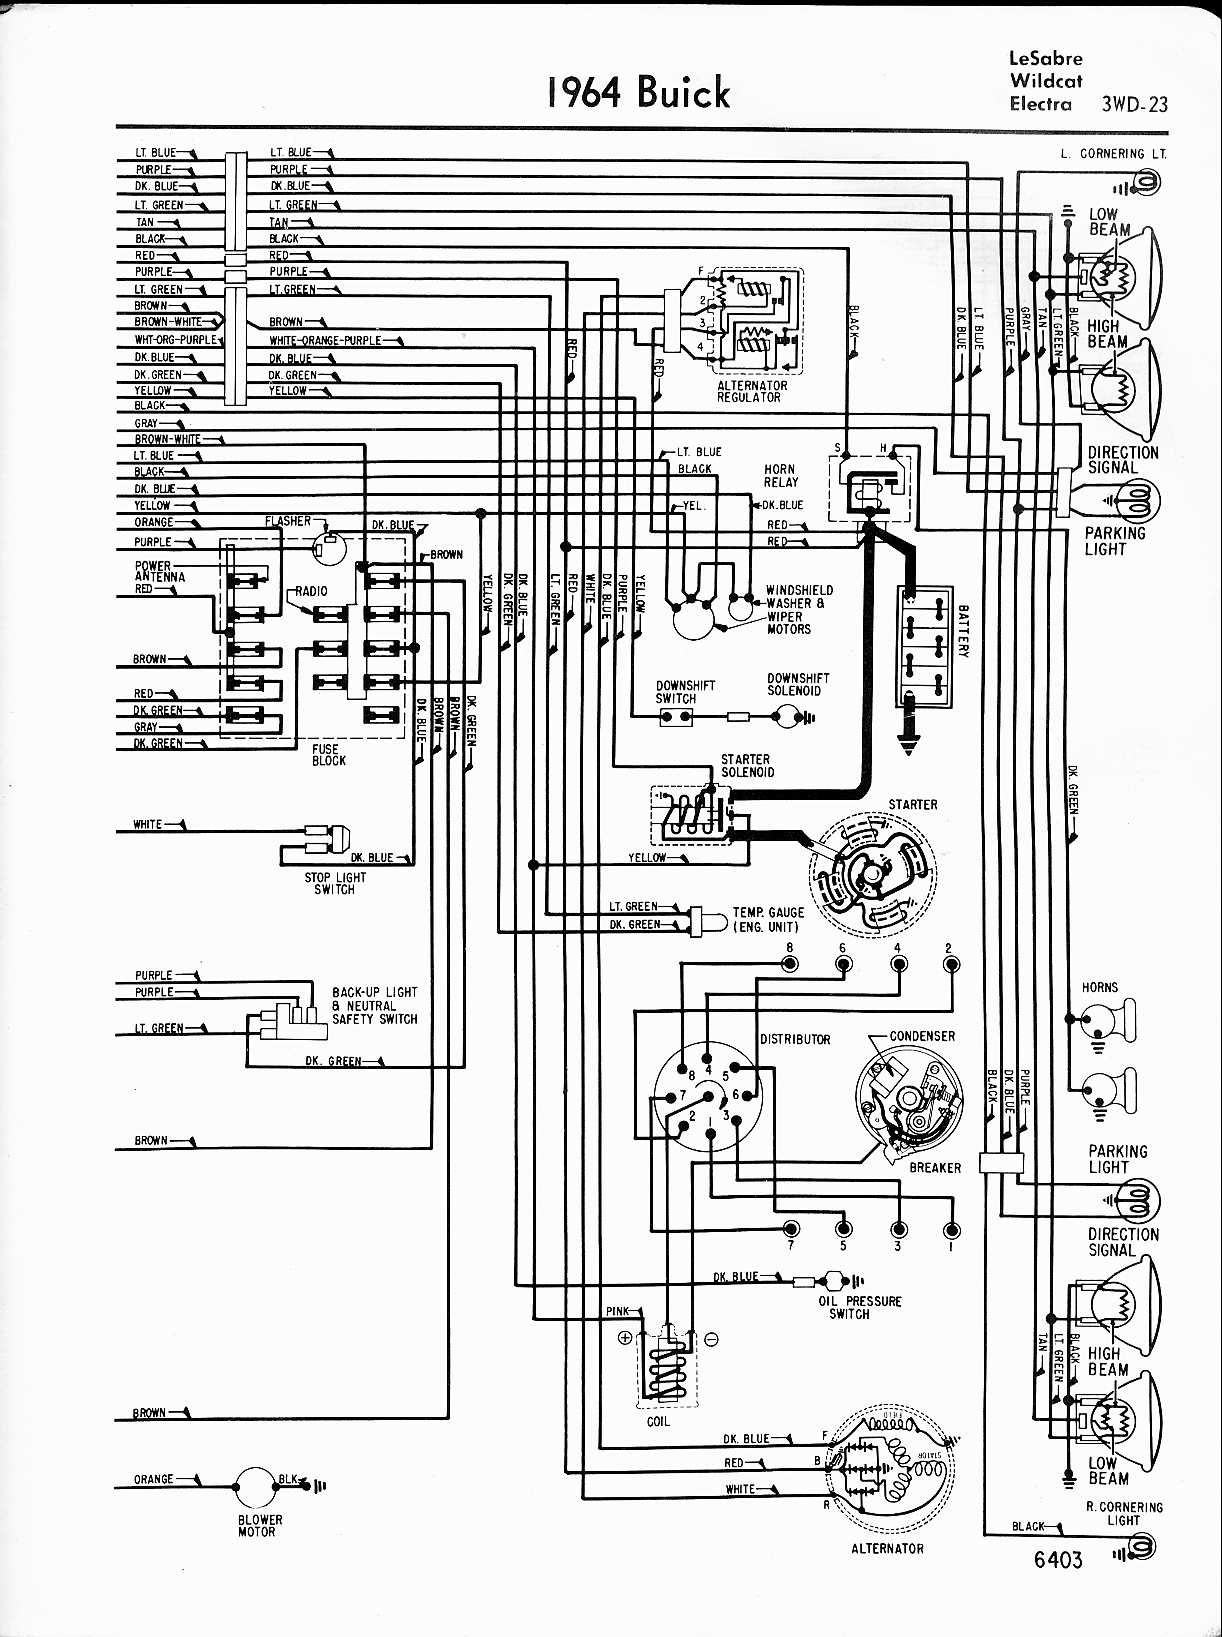 hight resolution of buick wiring diagrams 1957 1965 arctic cat 250 wiring schematic 1964 lesabre wildcat electra